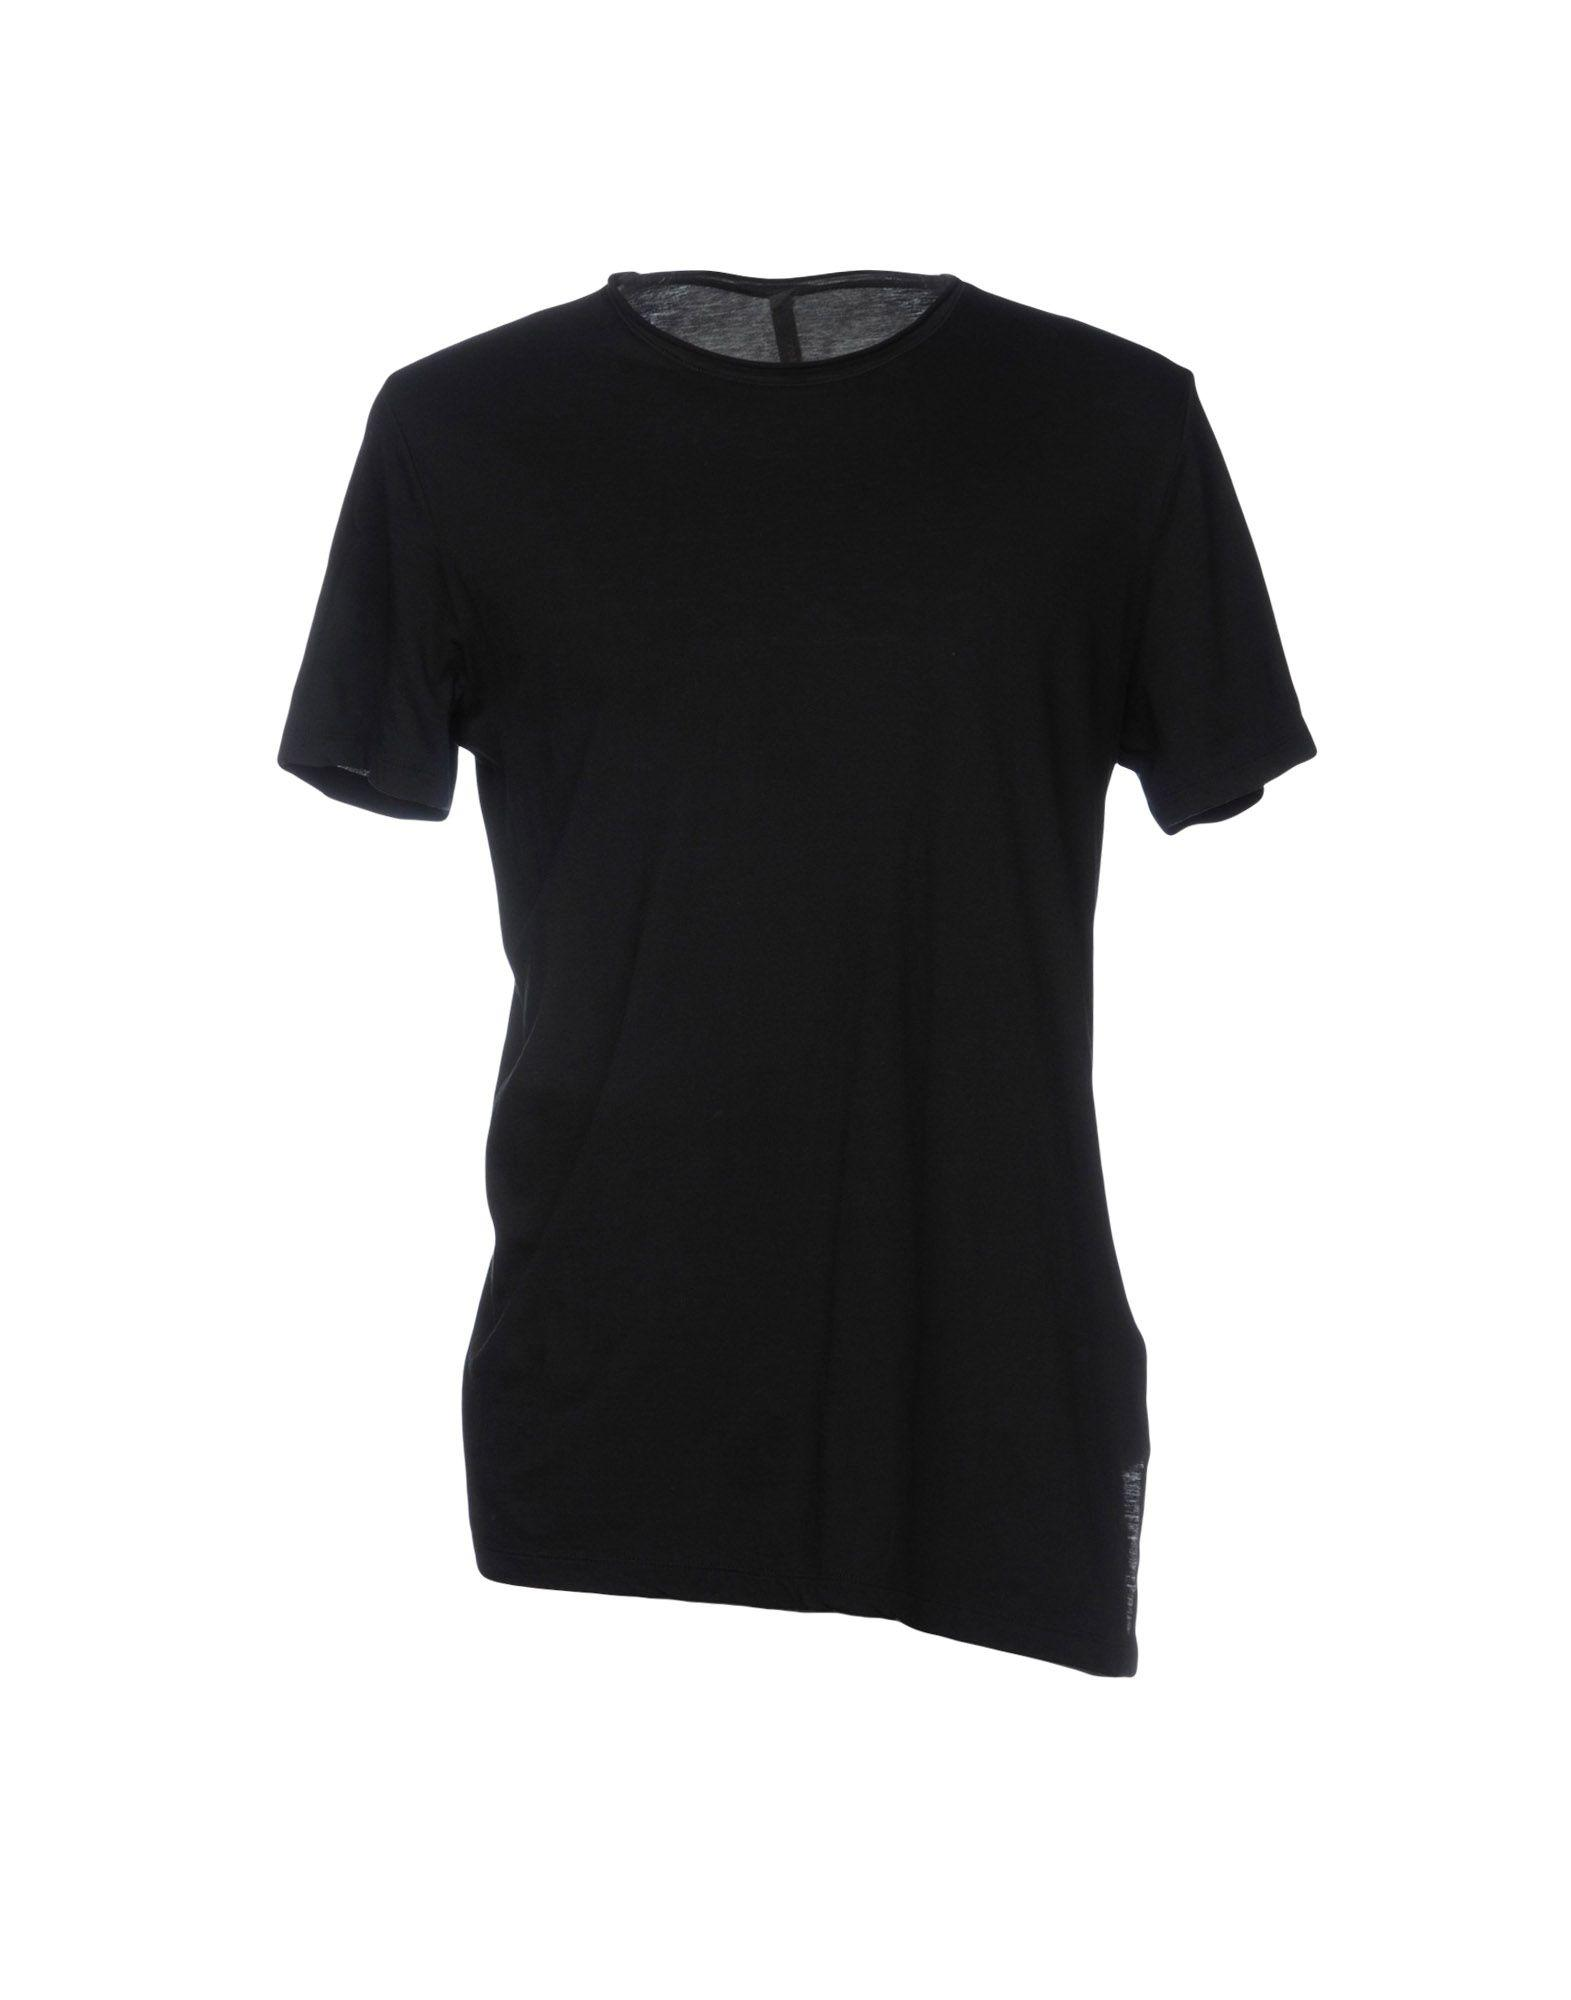 Forme D'expression T-shirts In Black